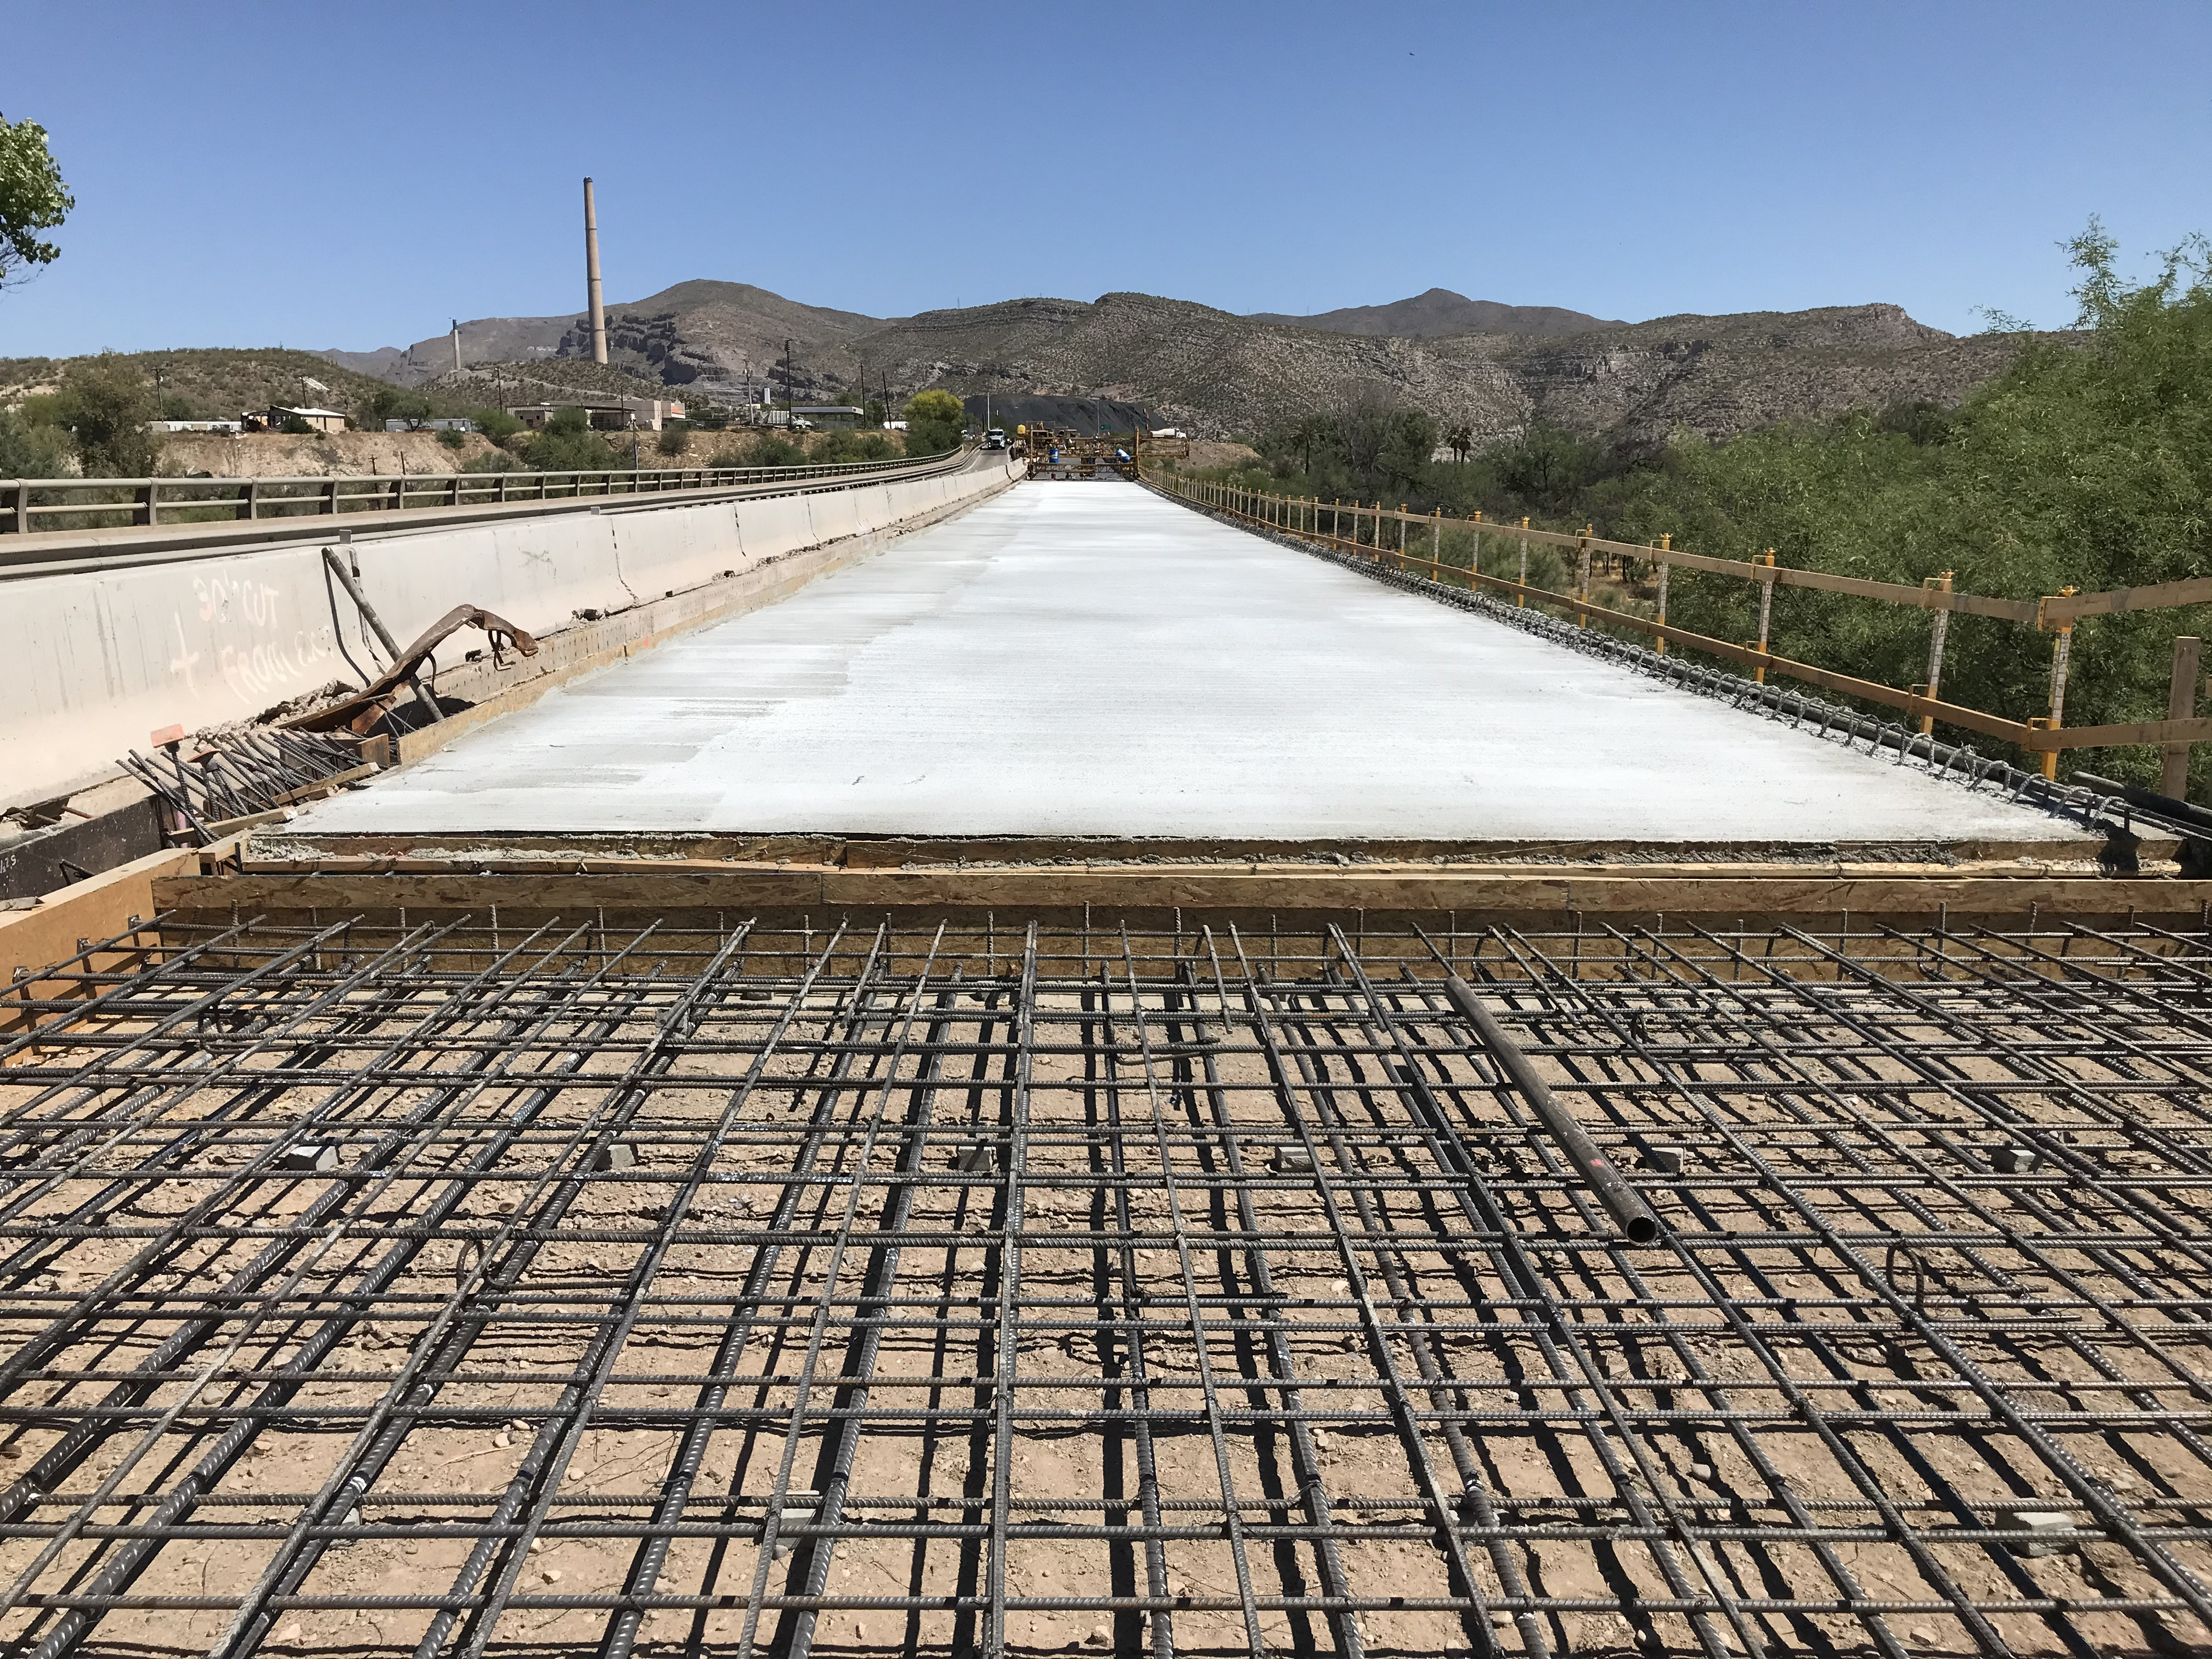 Concrete pourted for SR 77 bridge deck in Winkelman